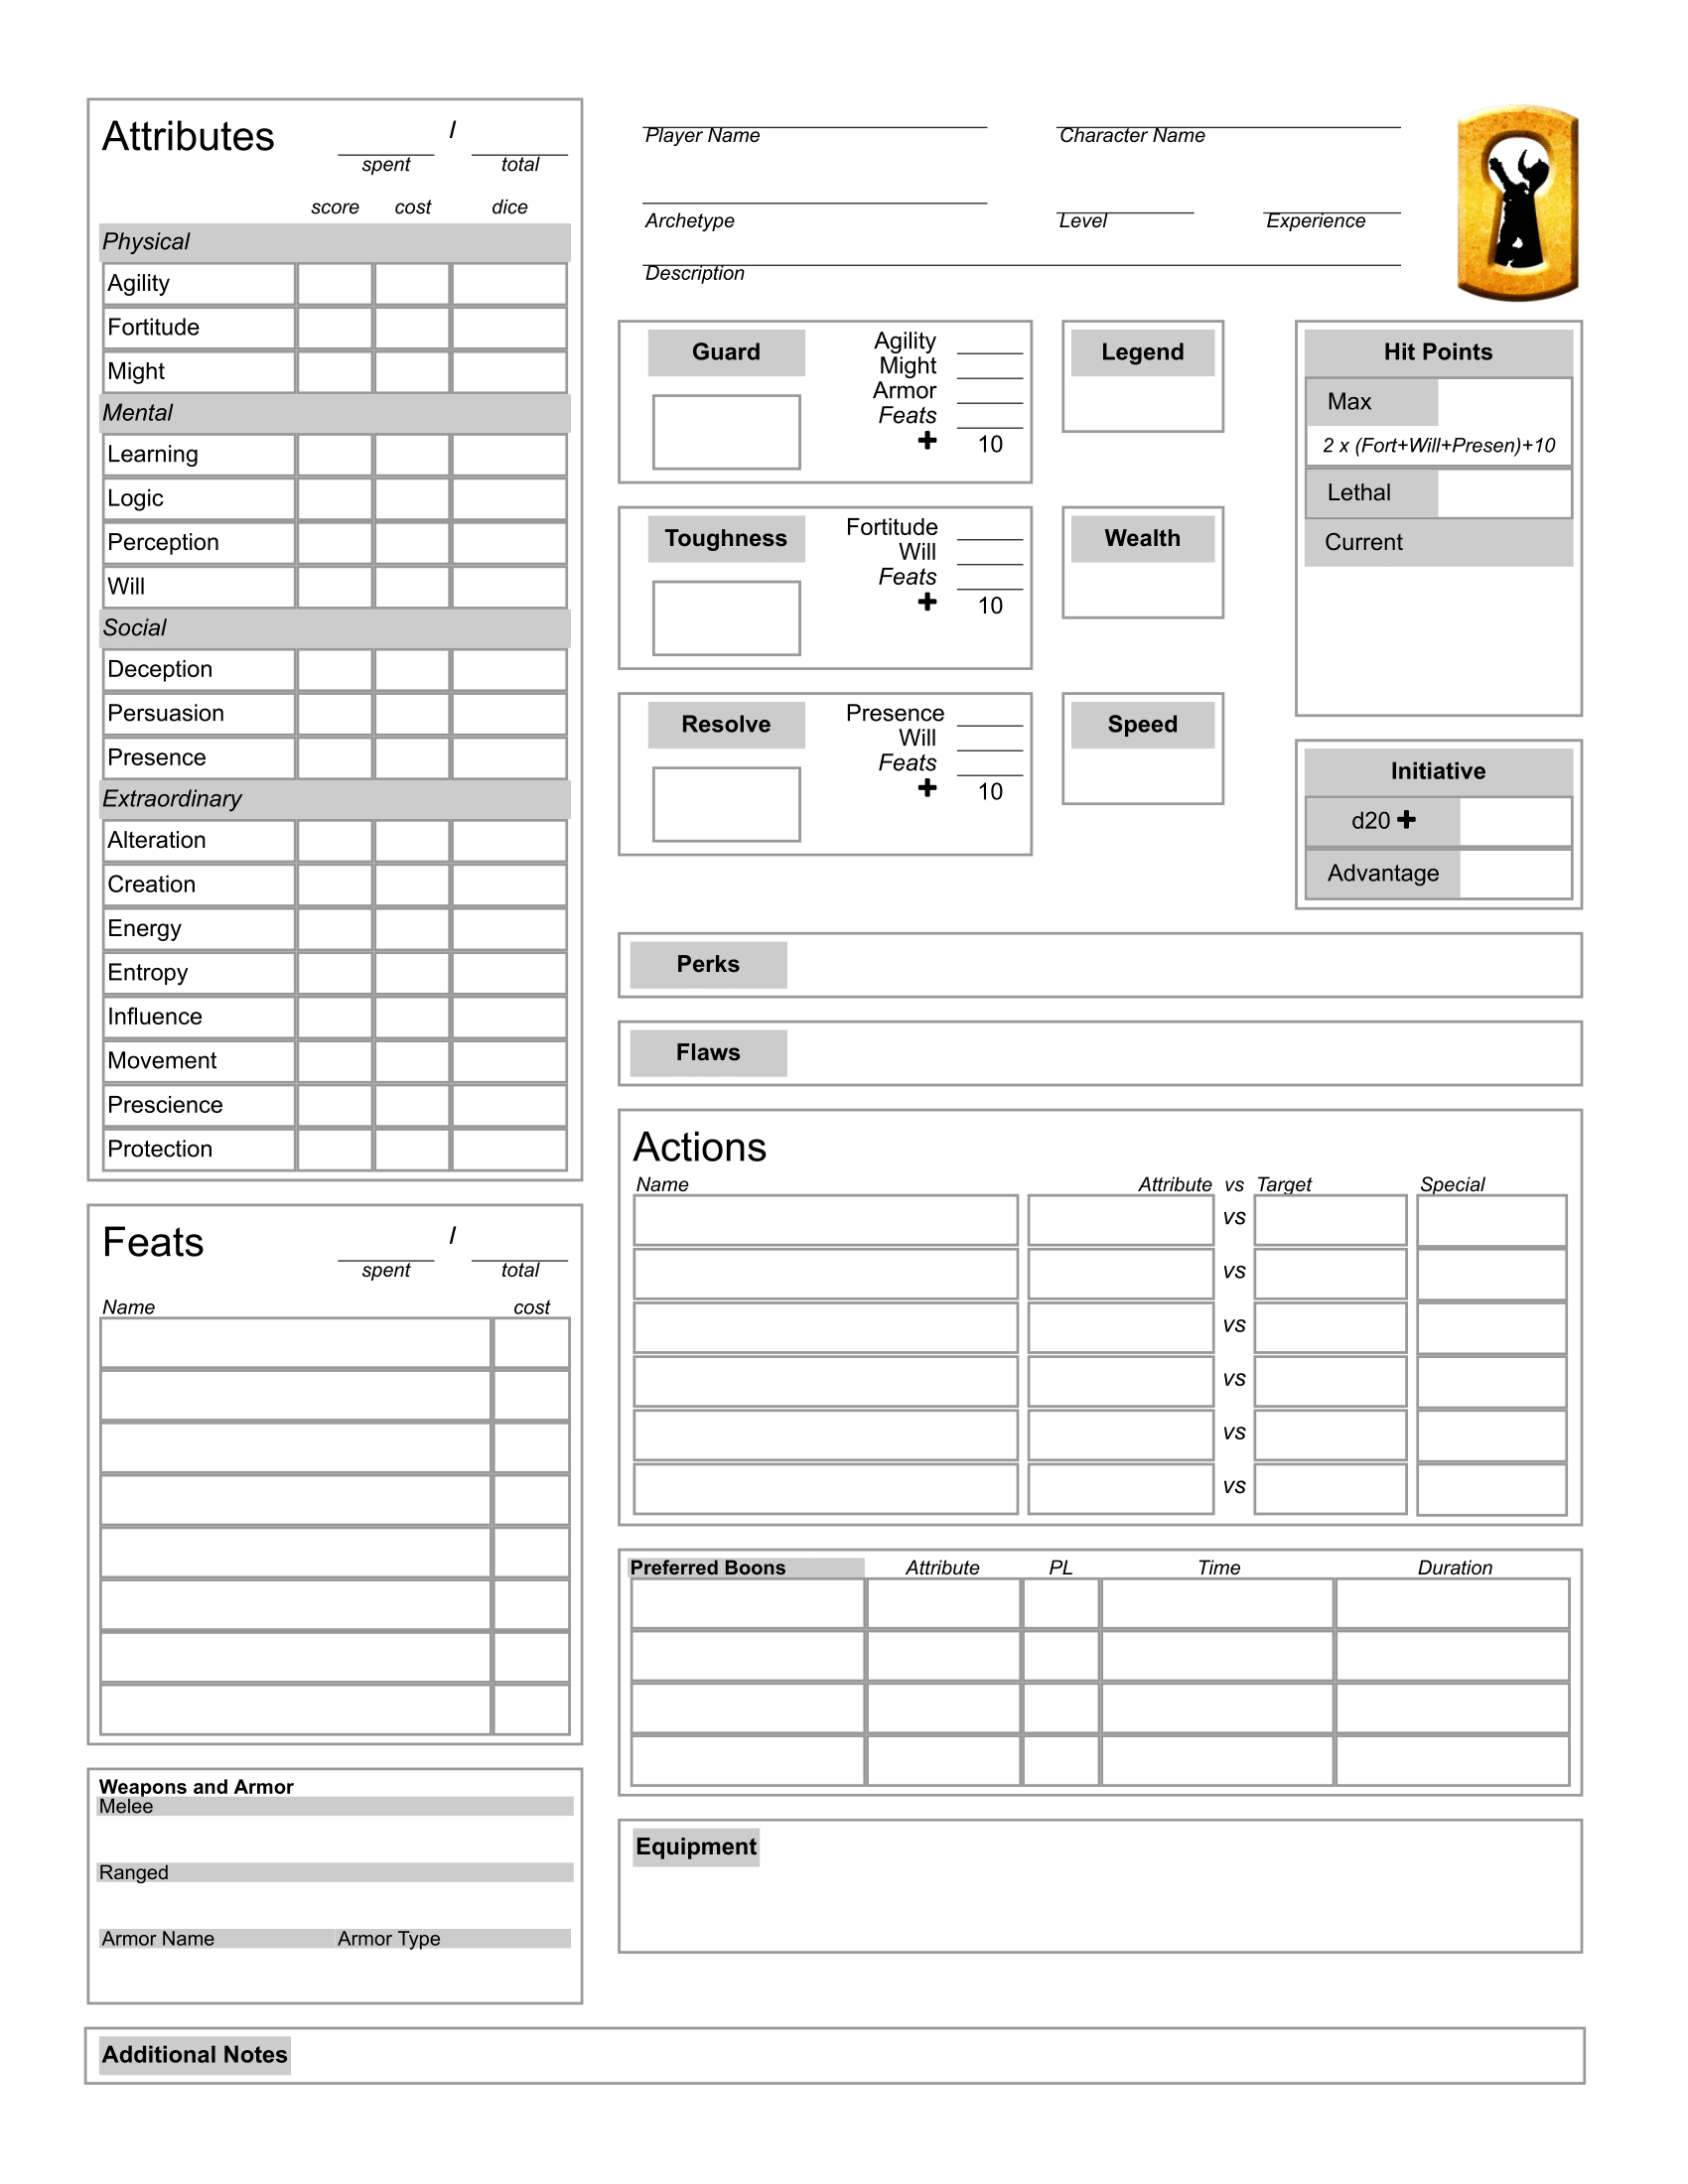 photo regarding Pathfinder Printable Character Sheet called Individuality Builder: Open up Legend RPG HeroMuster